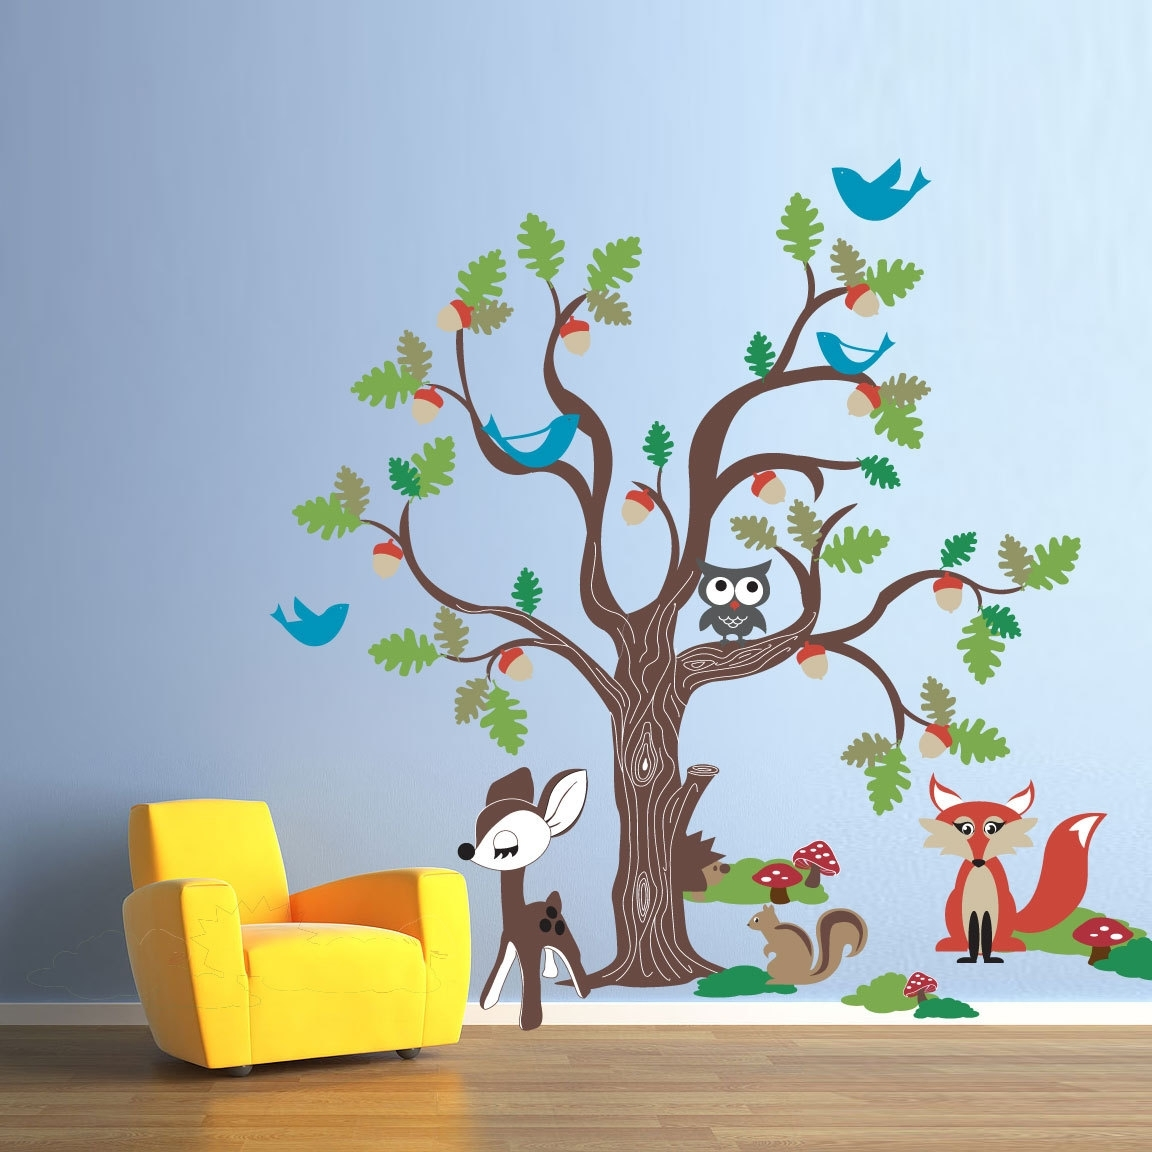 Newest Oak Tree Wall Art Within Vinyl Wall Decal Sticker Art – Oak Tree And Woodland Animals (View 7 of 15)